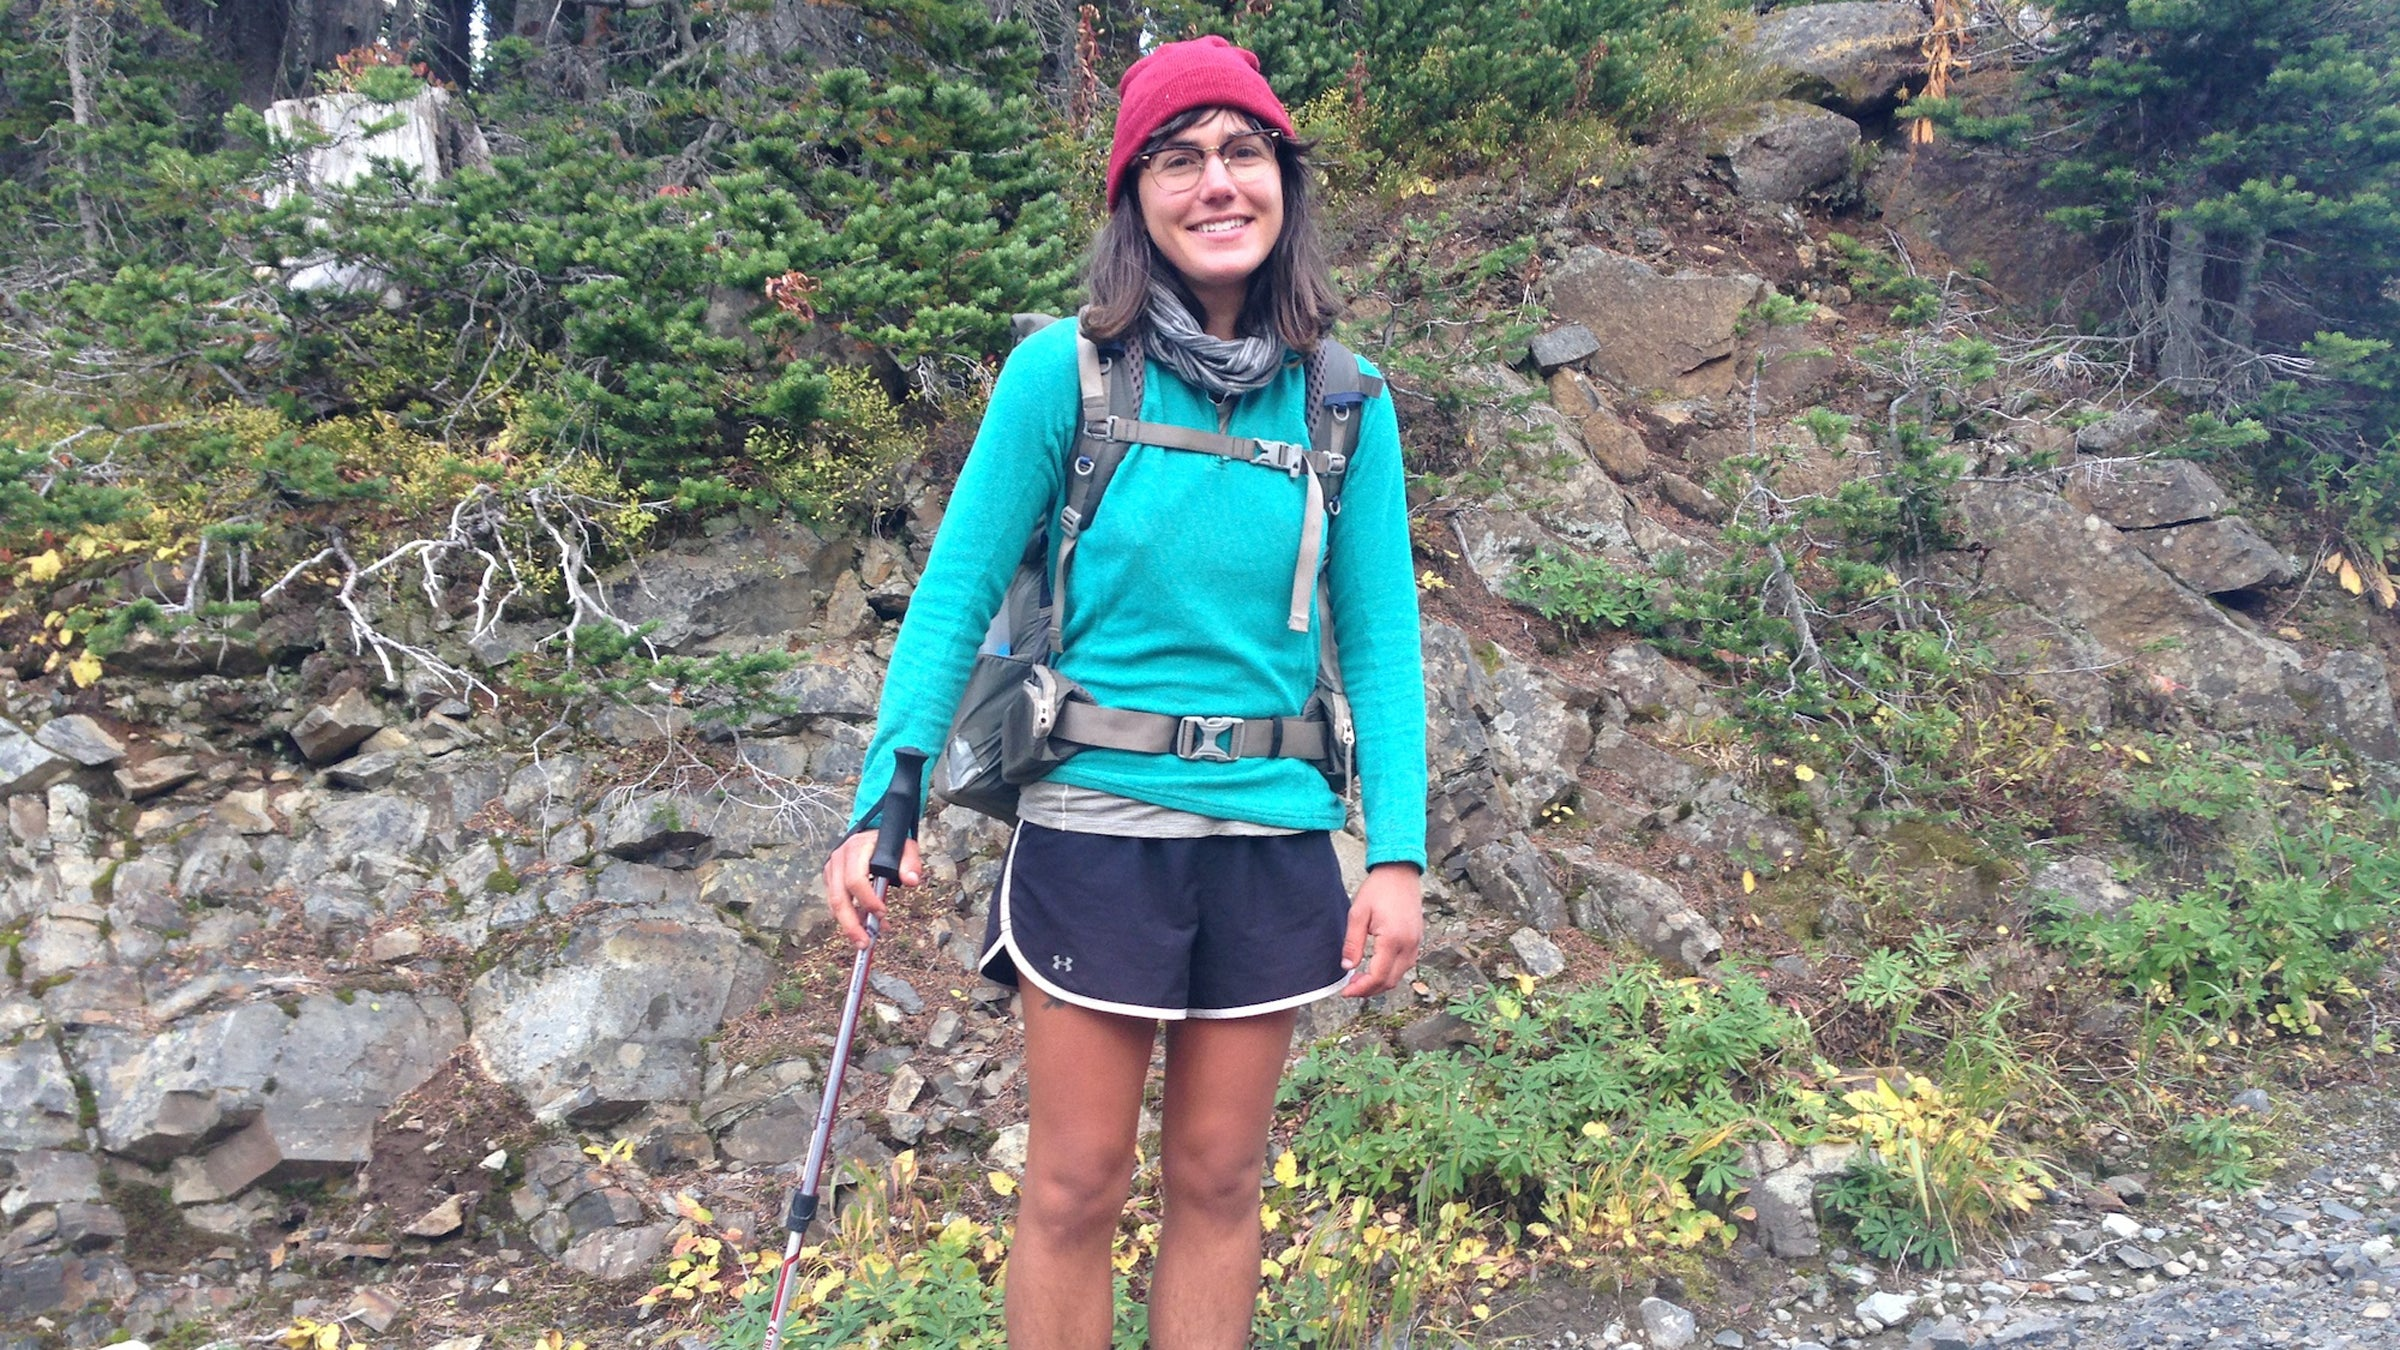 """Sasha Hashemipour, 28 Trail Name: Raging Pineapple Portland, Oregon """"The biggest thing has been being kind and making kindness a part of my life, and paying it forward. I've received a lot of kindness. I've noticed kindness on the trail more than I have out in the real world. I'm sure it's there; it's definitely there, but maybe you don't notice it as much. I want to focus on kindness more and bring it into my life. After the trail, I'll try to be more peaceful, more present."""""""